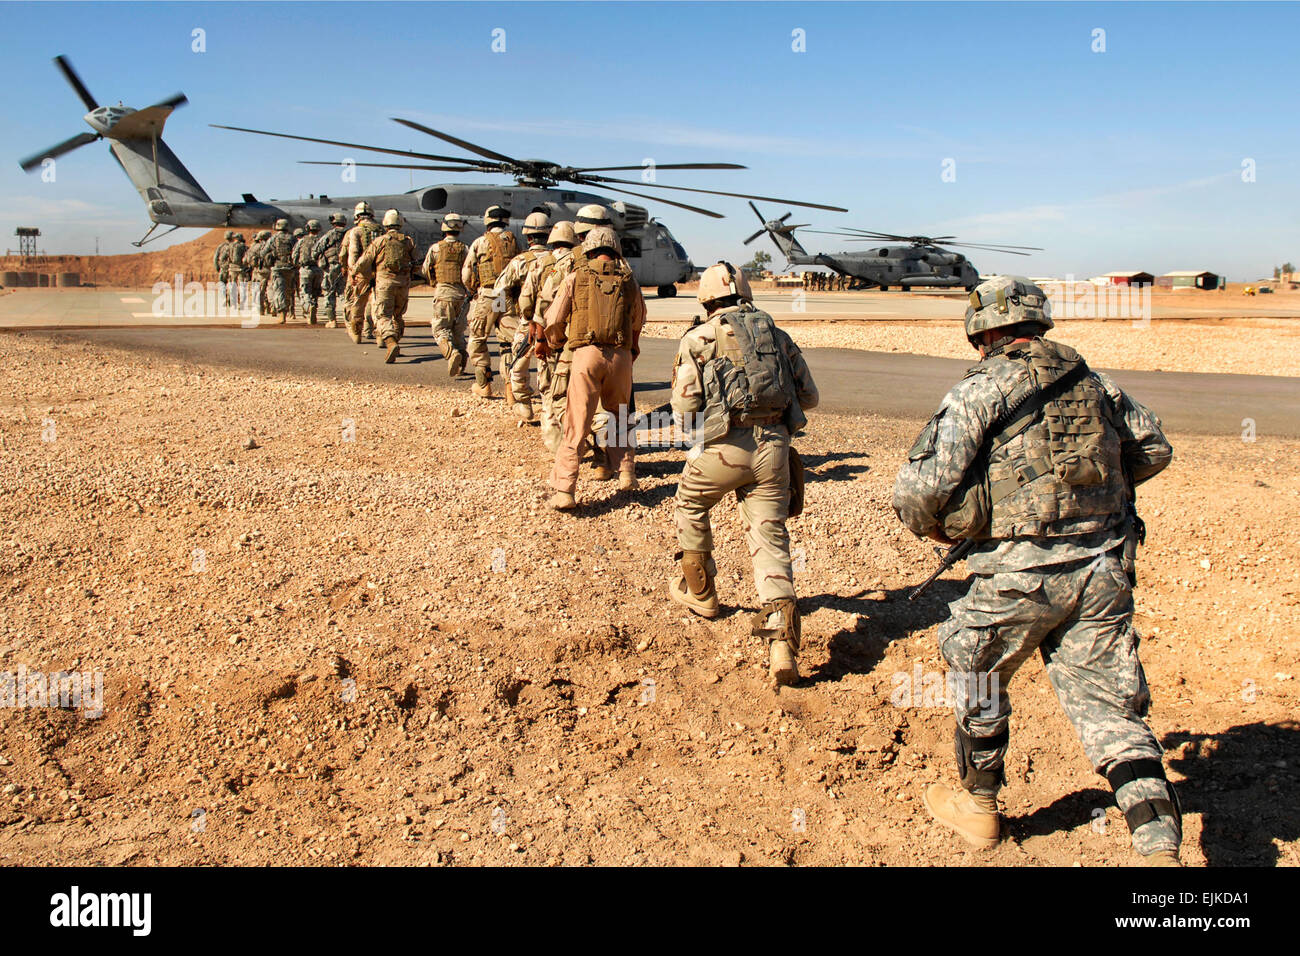 U.S. Army and Iraqi army soldiers board a Marine Corps CH-53 Super Stallion helicopter during a static loading exercise - Stock Image